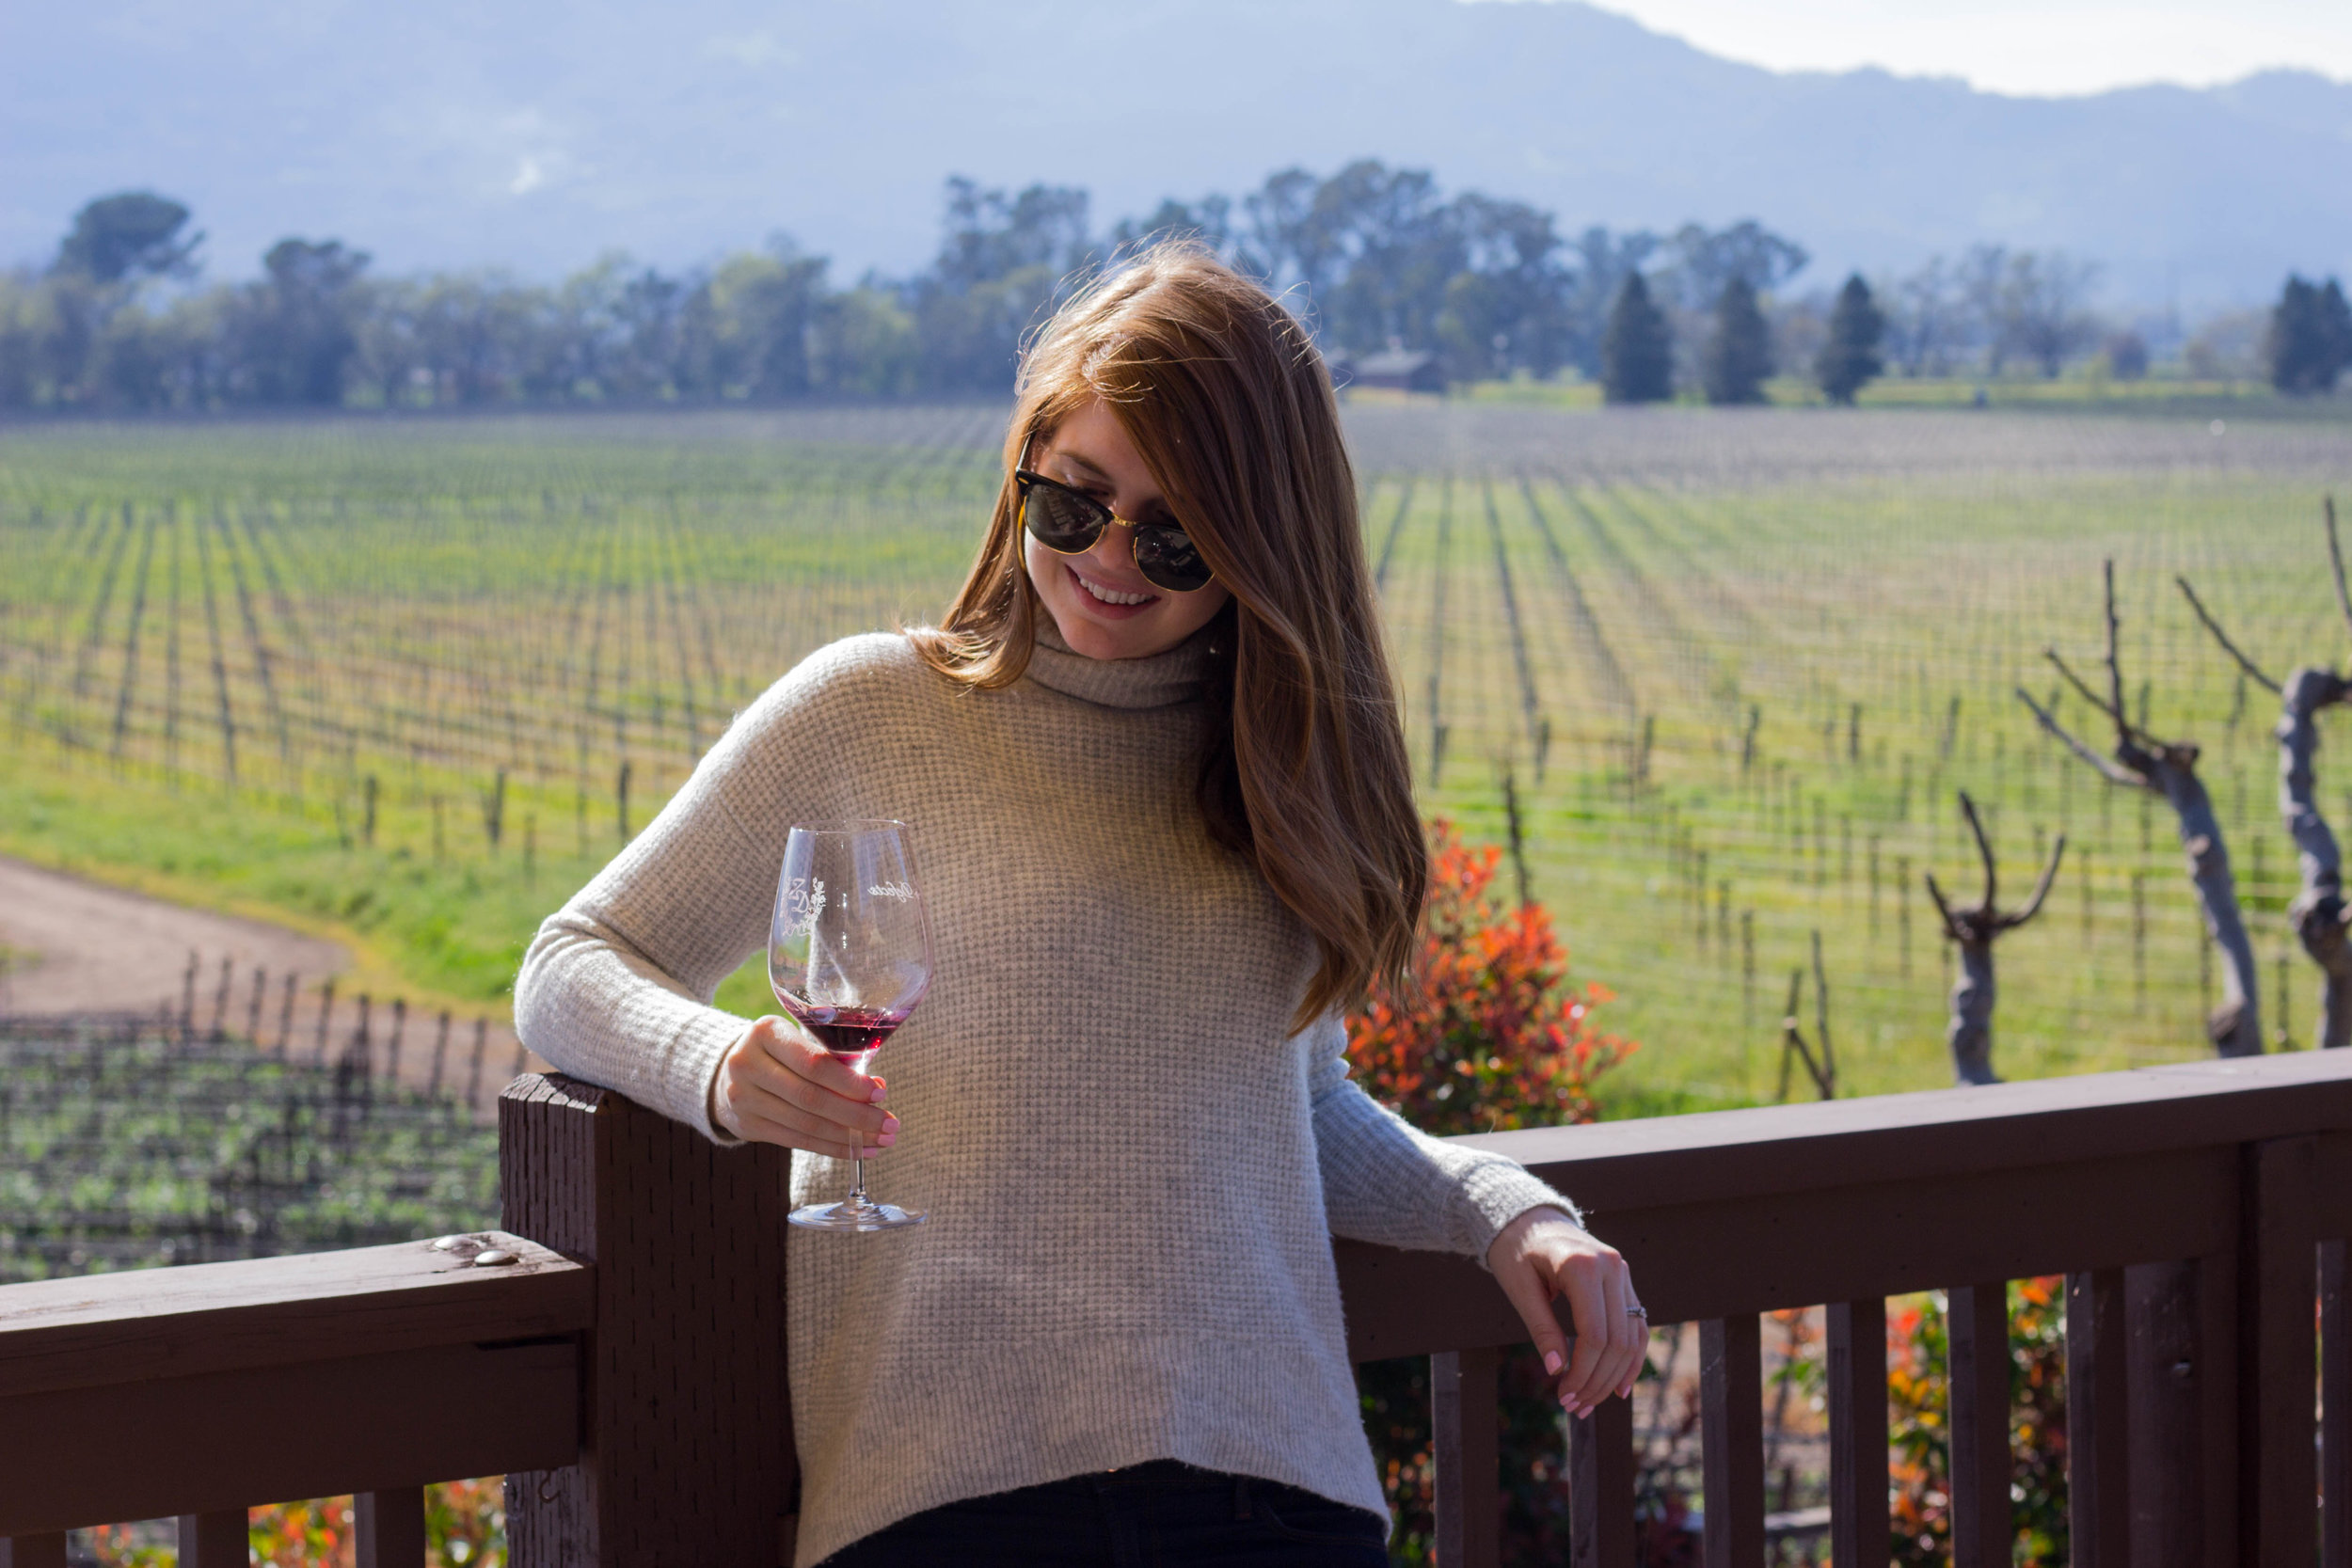 zd wines, tips for wine  tasting in napa valley, sonoma, napa, visit california, wine tasting tips, san francisco, oakland,